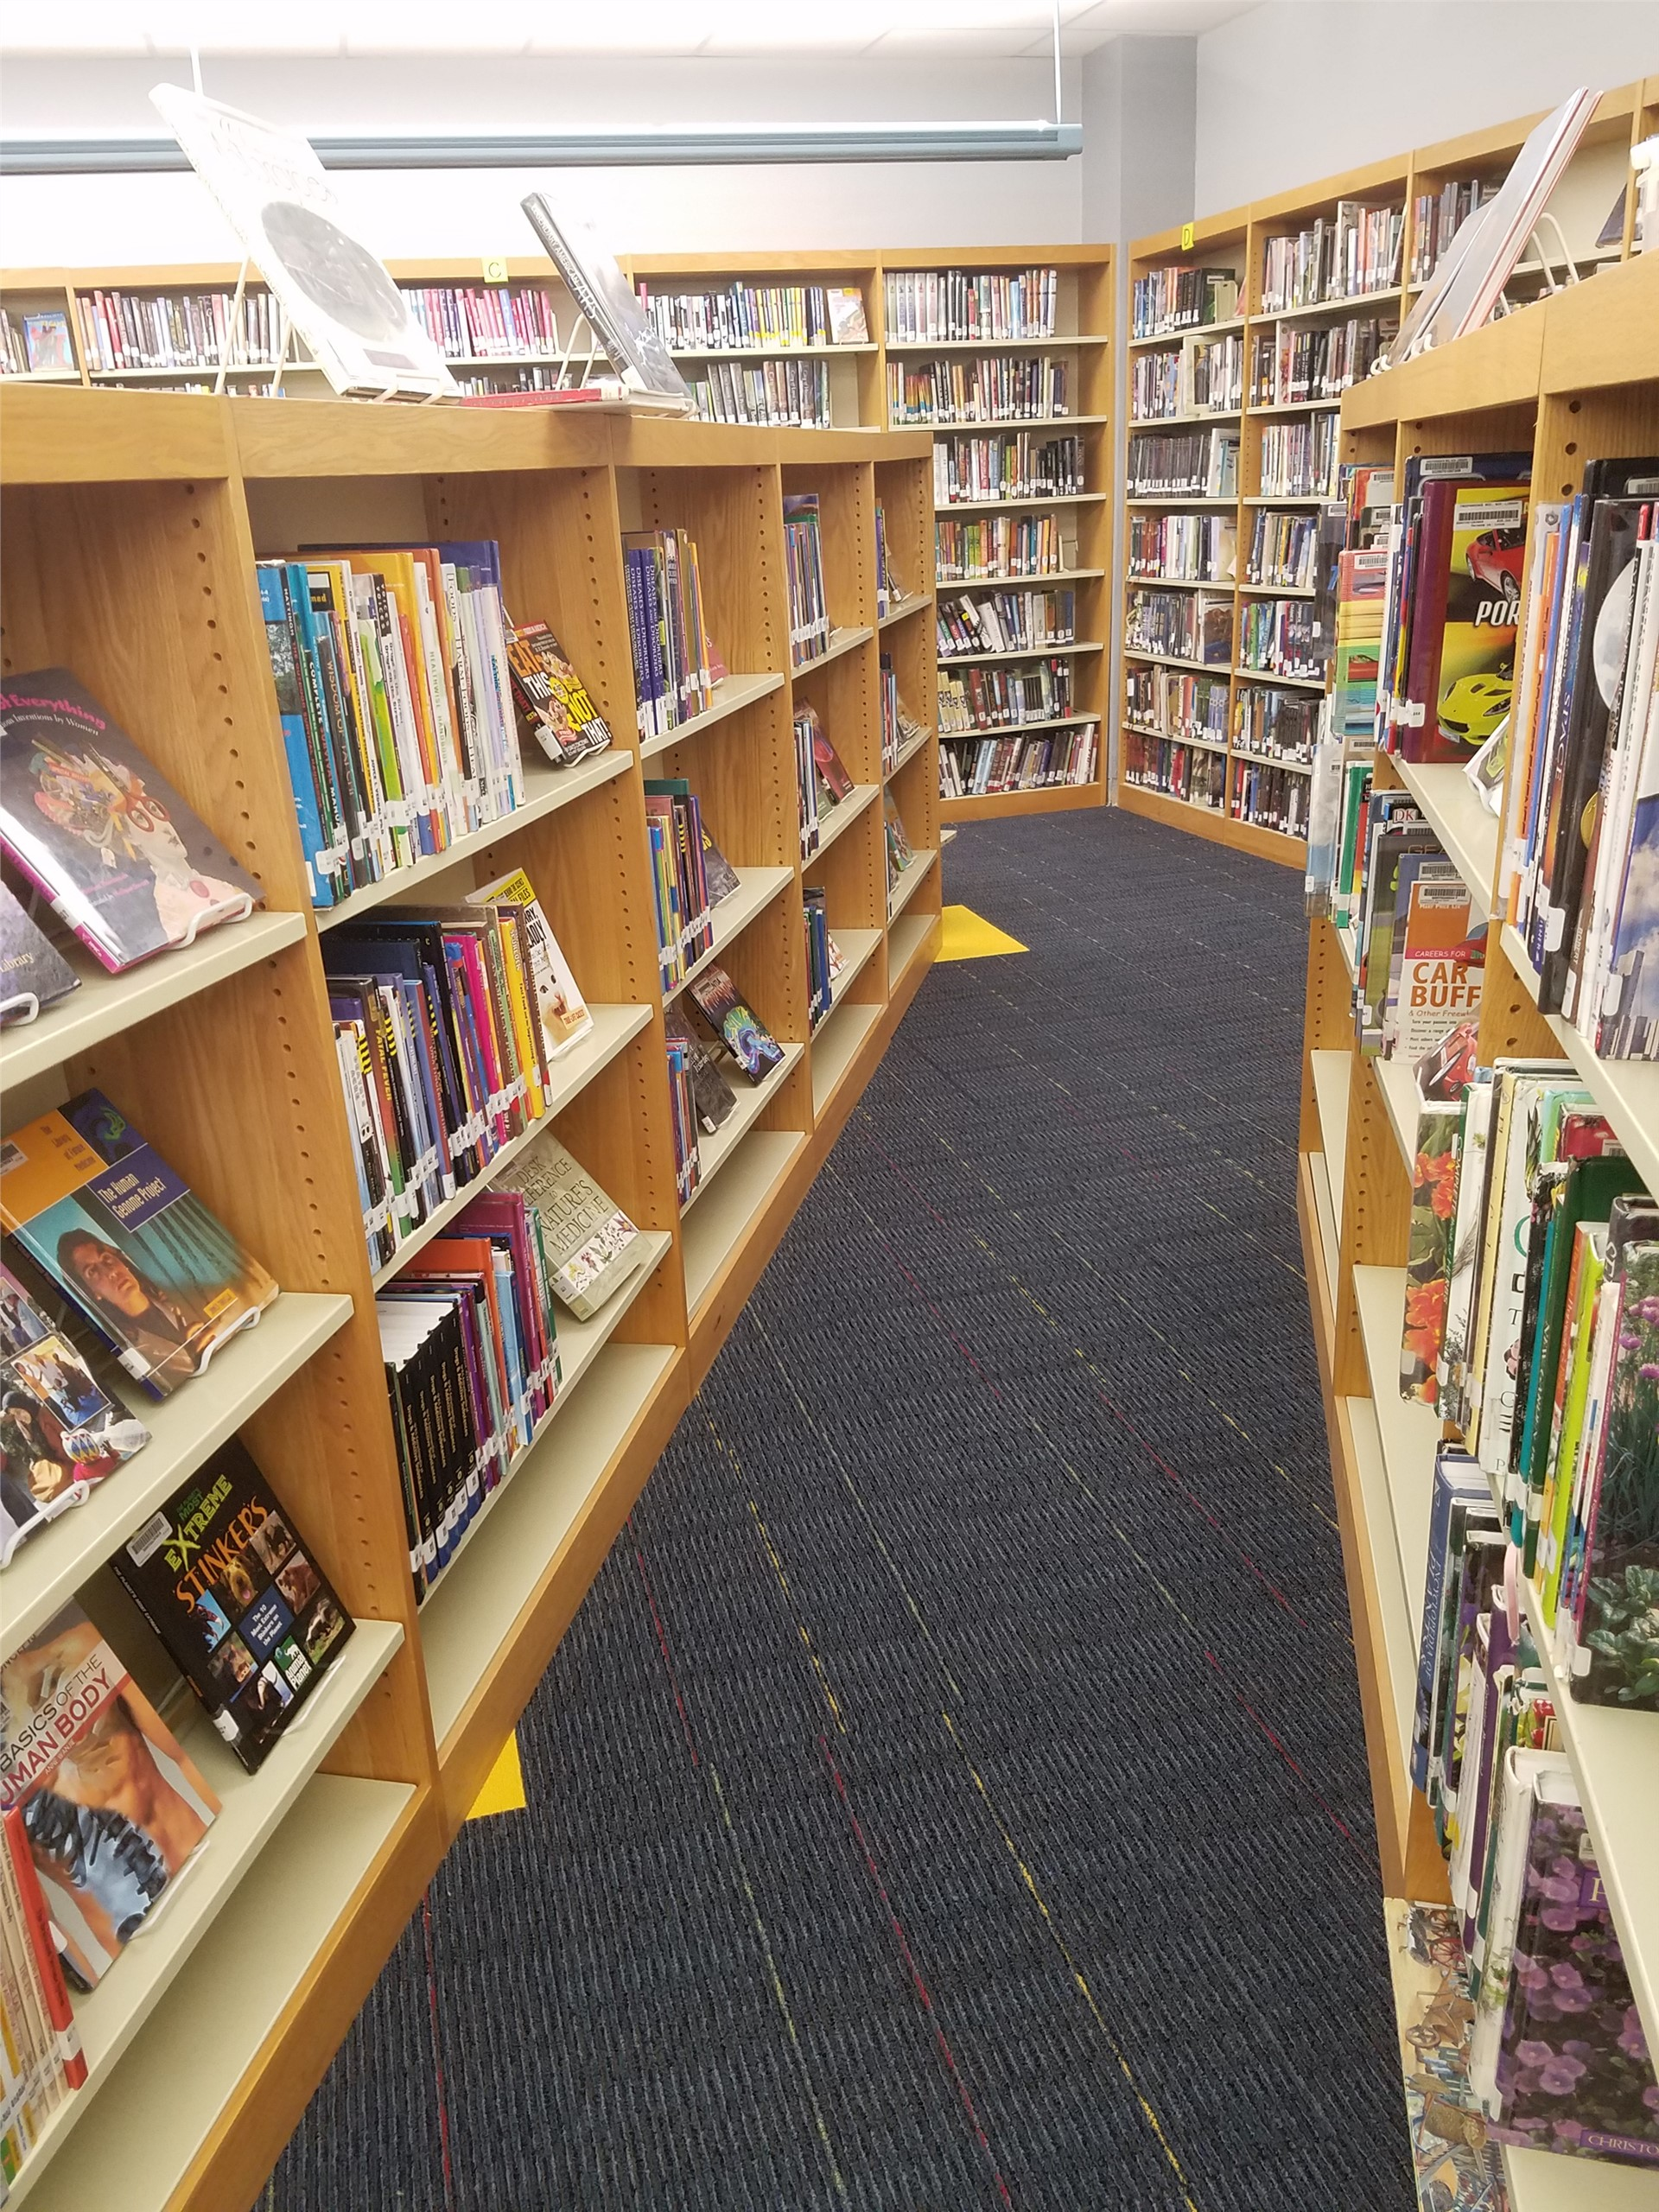 a view down the book shelves